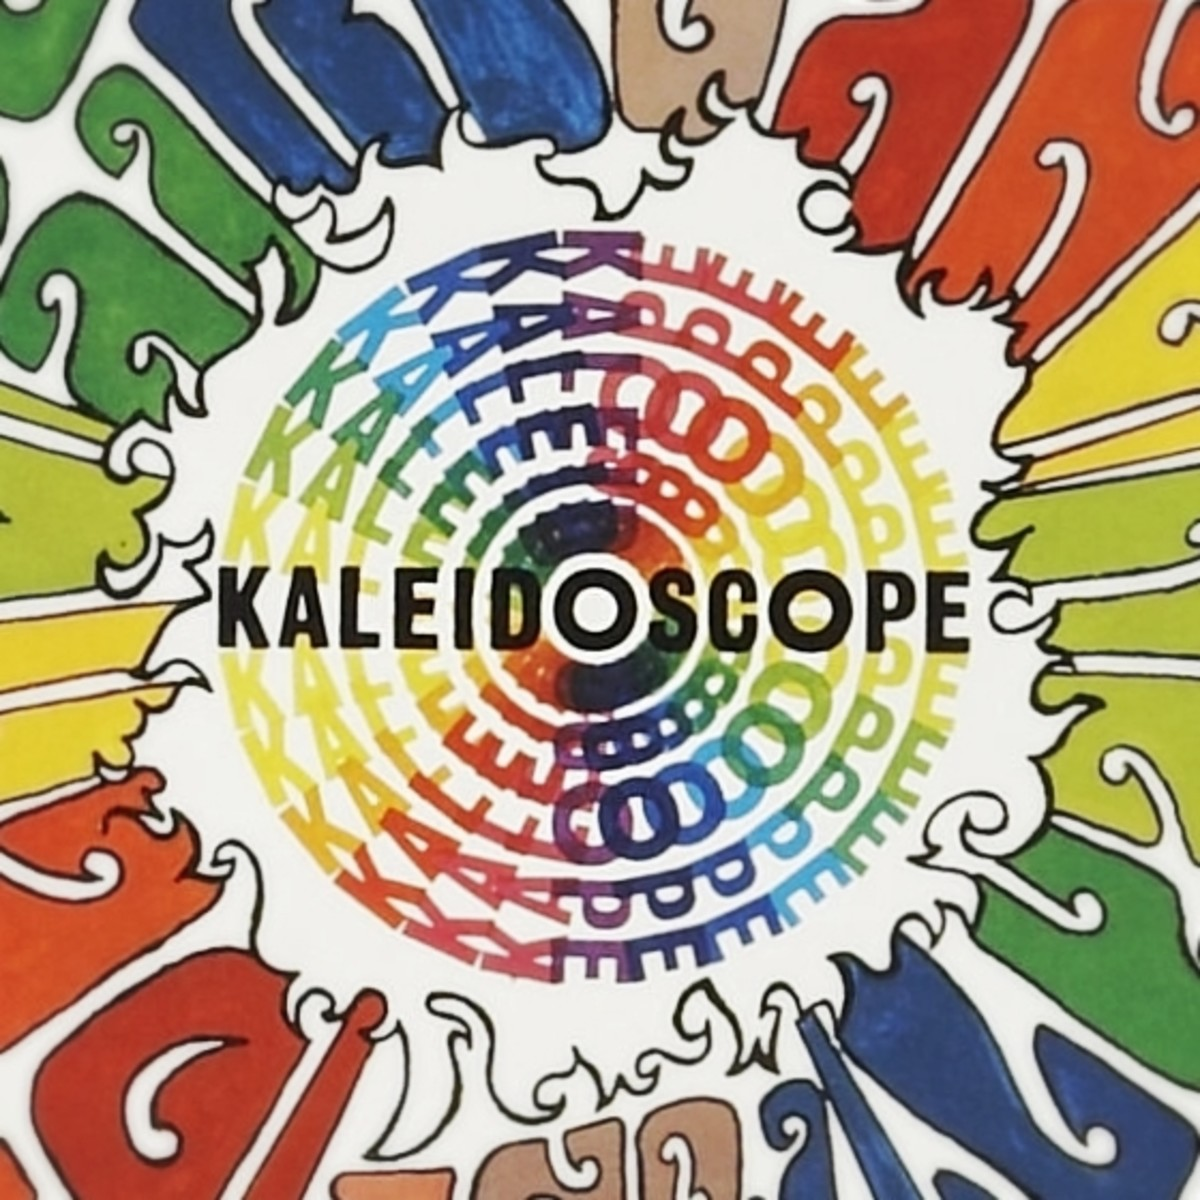 The Kaleidoscope Logo 1968 6230 Sunset Boulevard Hollywood